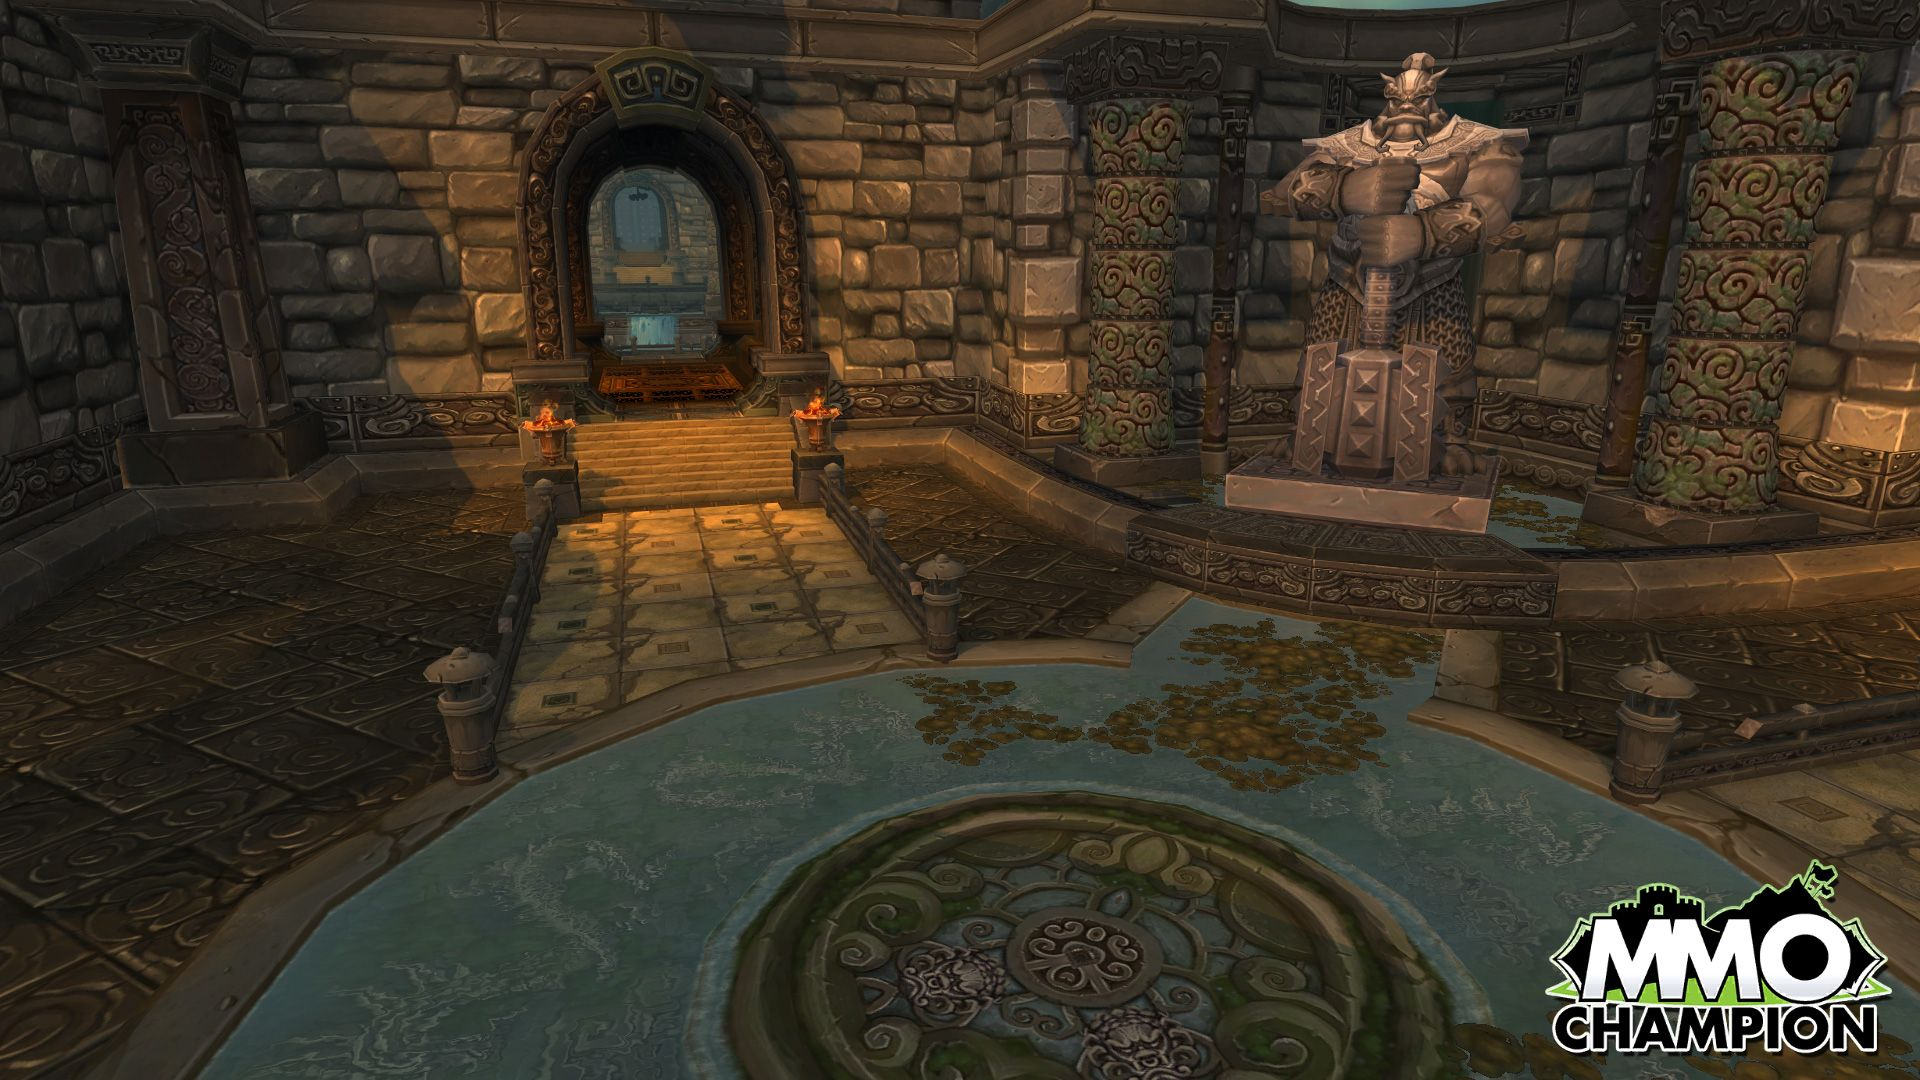 Wow Throne Of Thunder Google Search Game Environment Image Throne